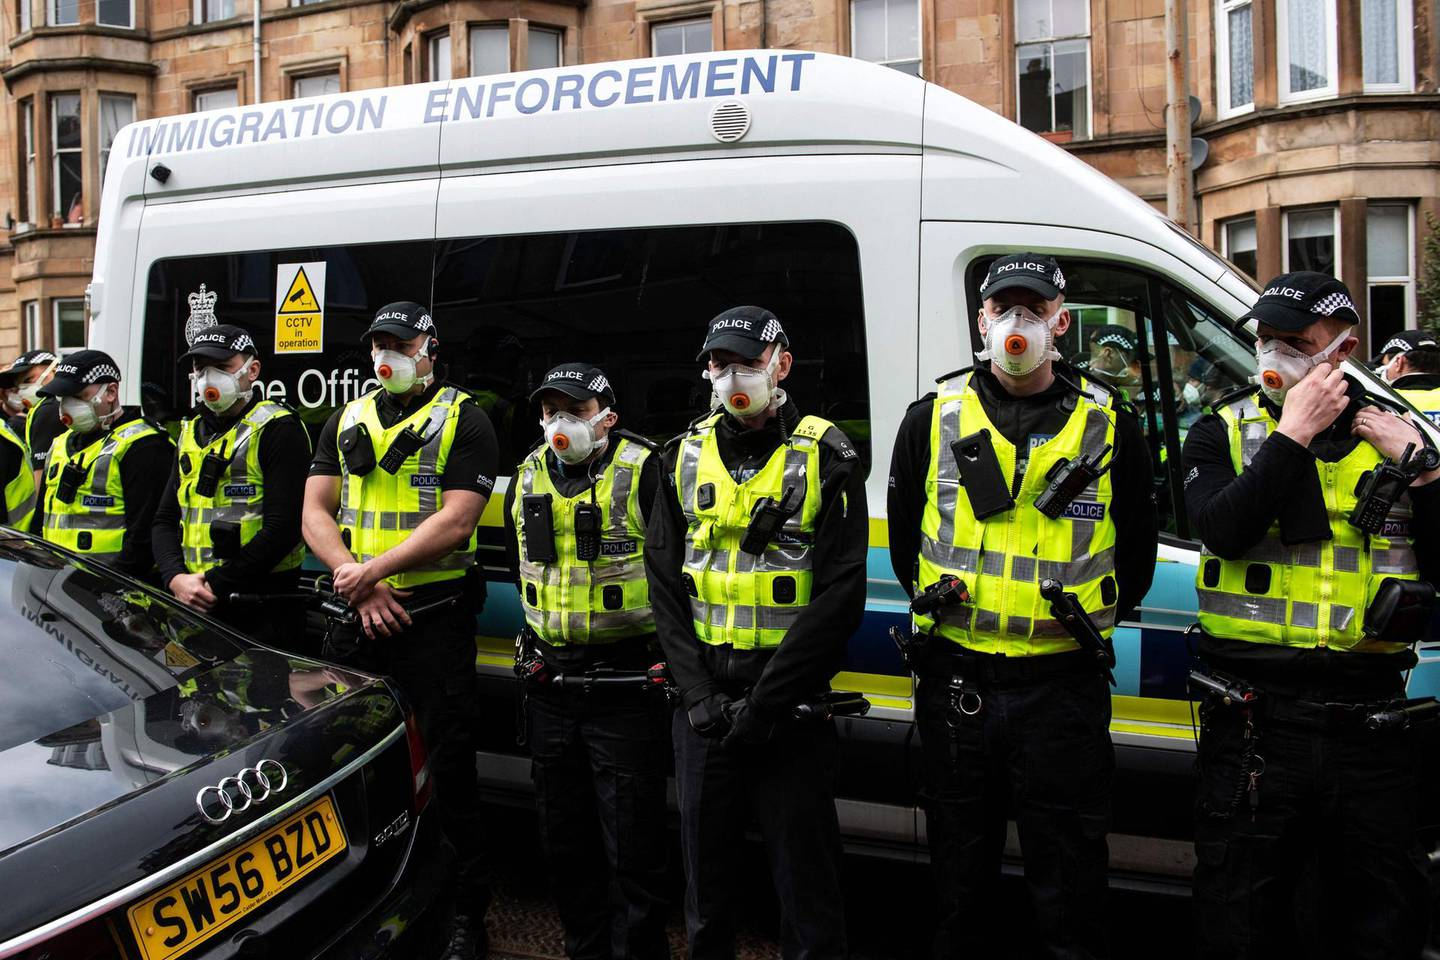 Protestors surround an Immigration Enforcement van to stop it from departing after individuals were detained in Glasgow on May 13, 2021. / AFP / Andy Buchanan